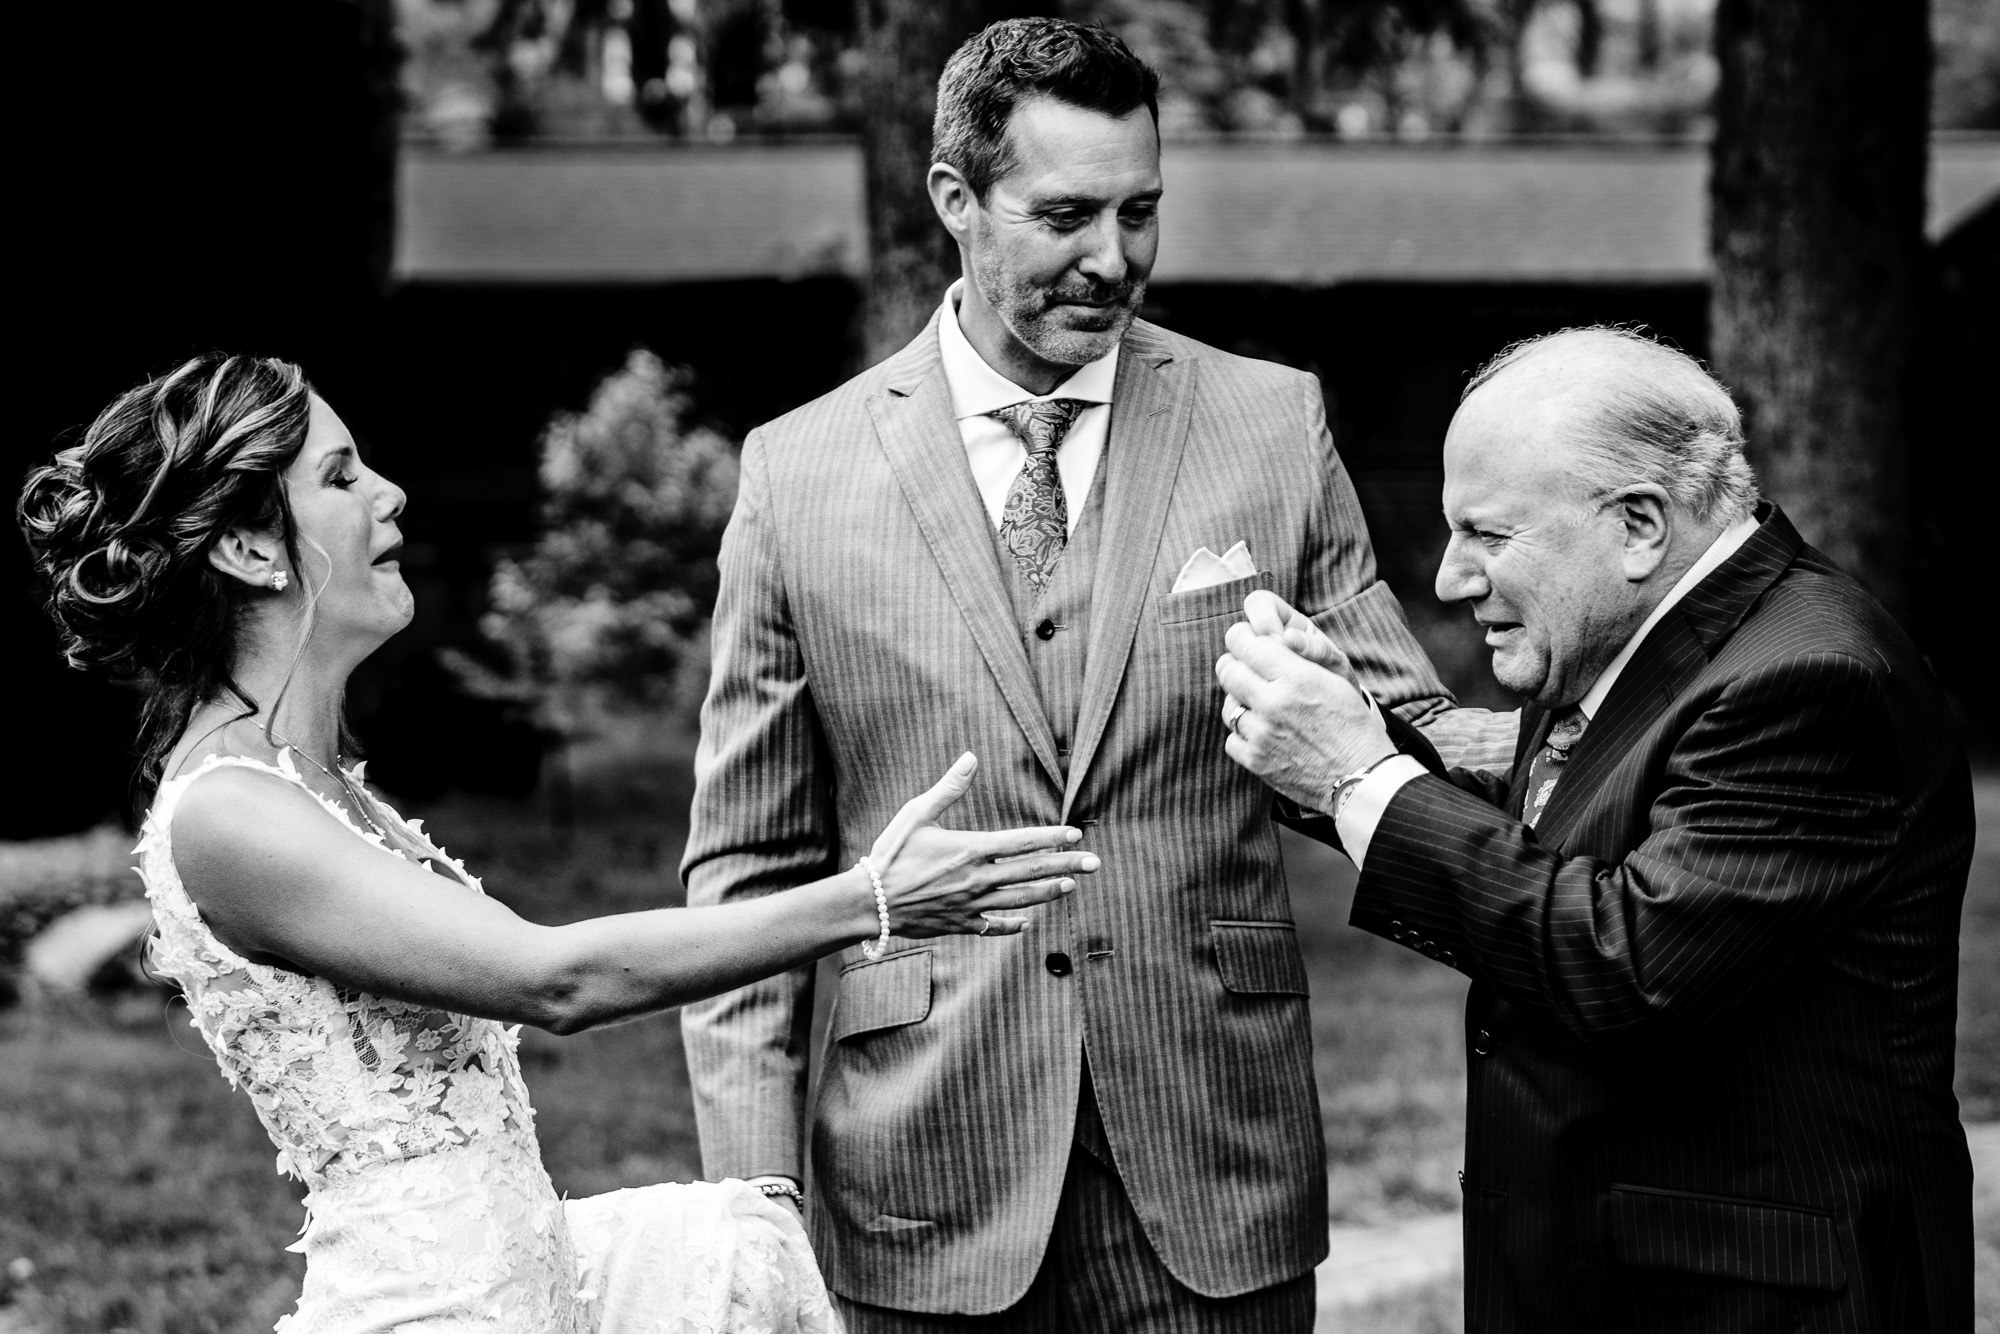 Father sees bride and bursts into tears - photo by Jos & Tree